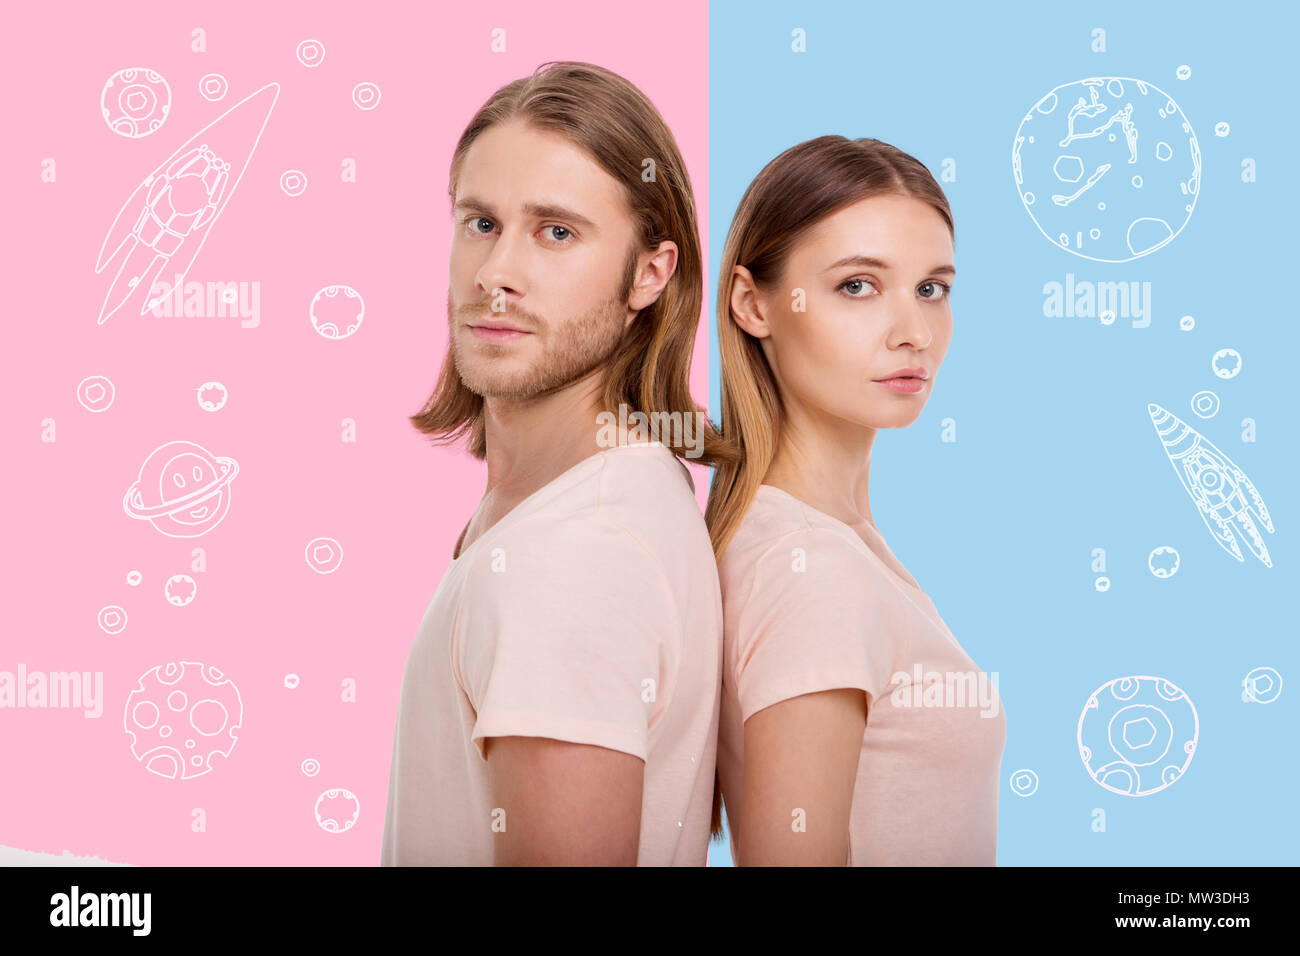 Attractive people standing back to back and dreaming about space - Stock Image